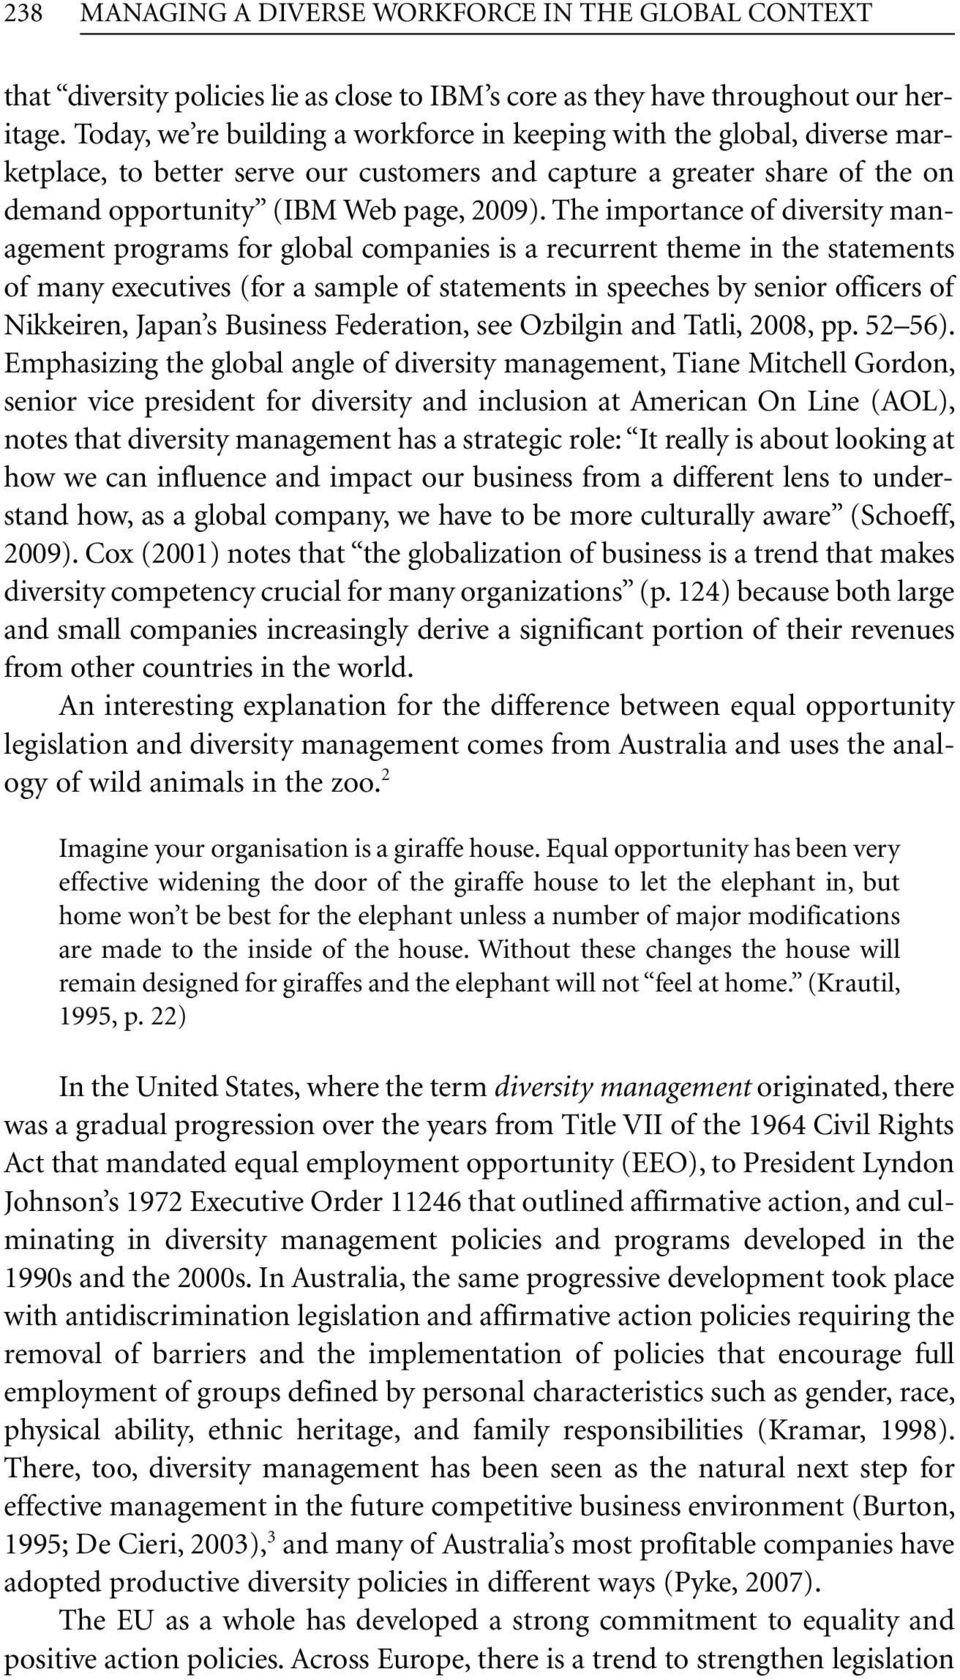 The importance of diversity management programs for global companies is a recurrent theme in the statements of many executives (for a sample of statements in speeches by senior officers of Nikkeiren,